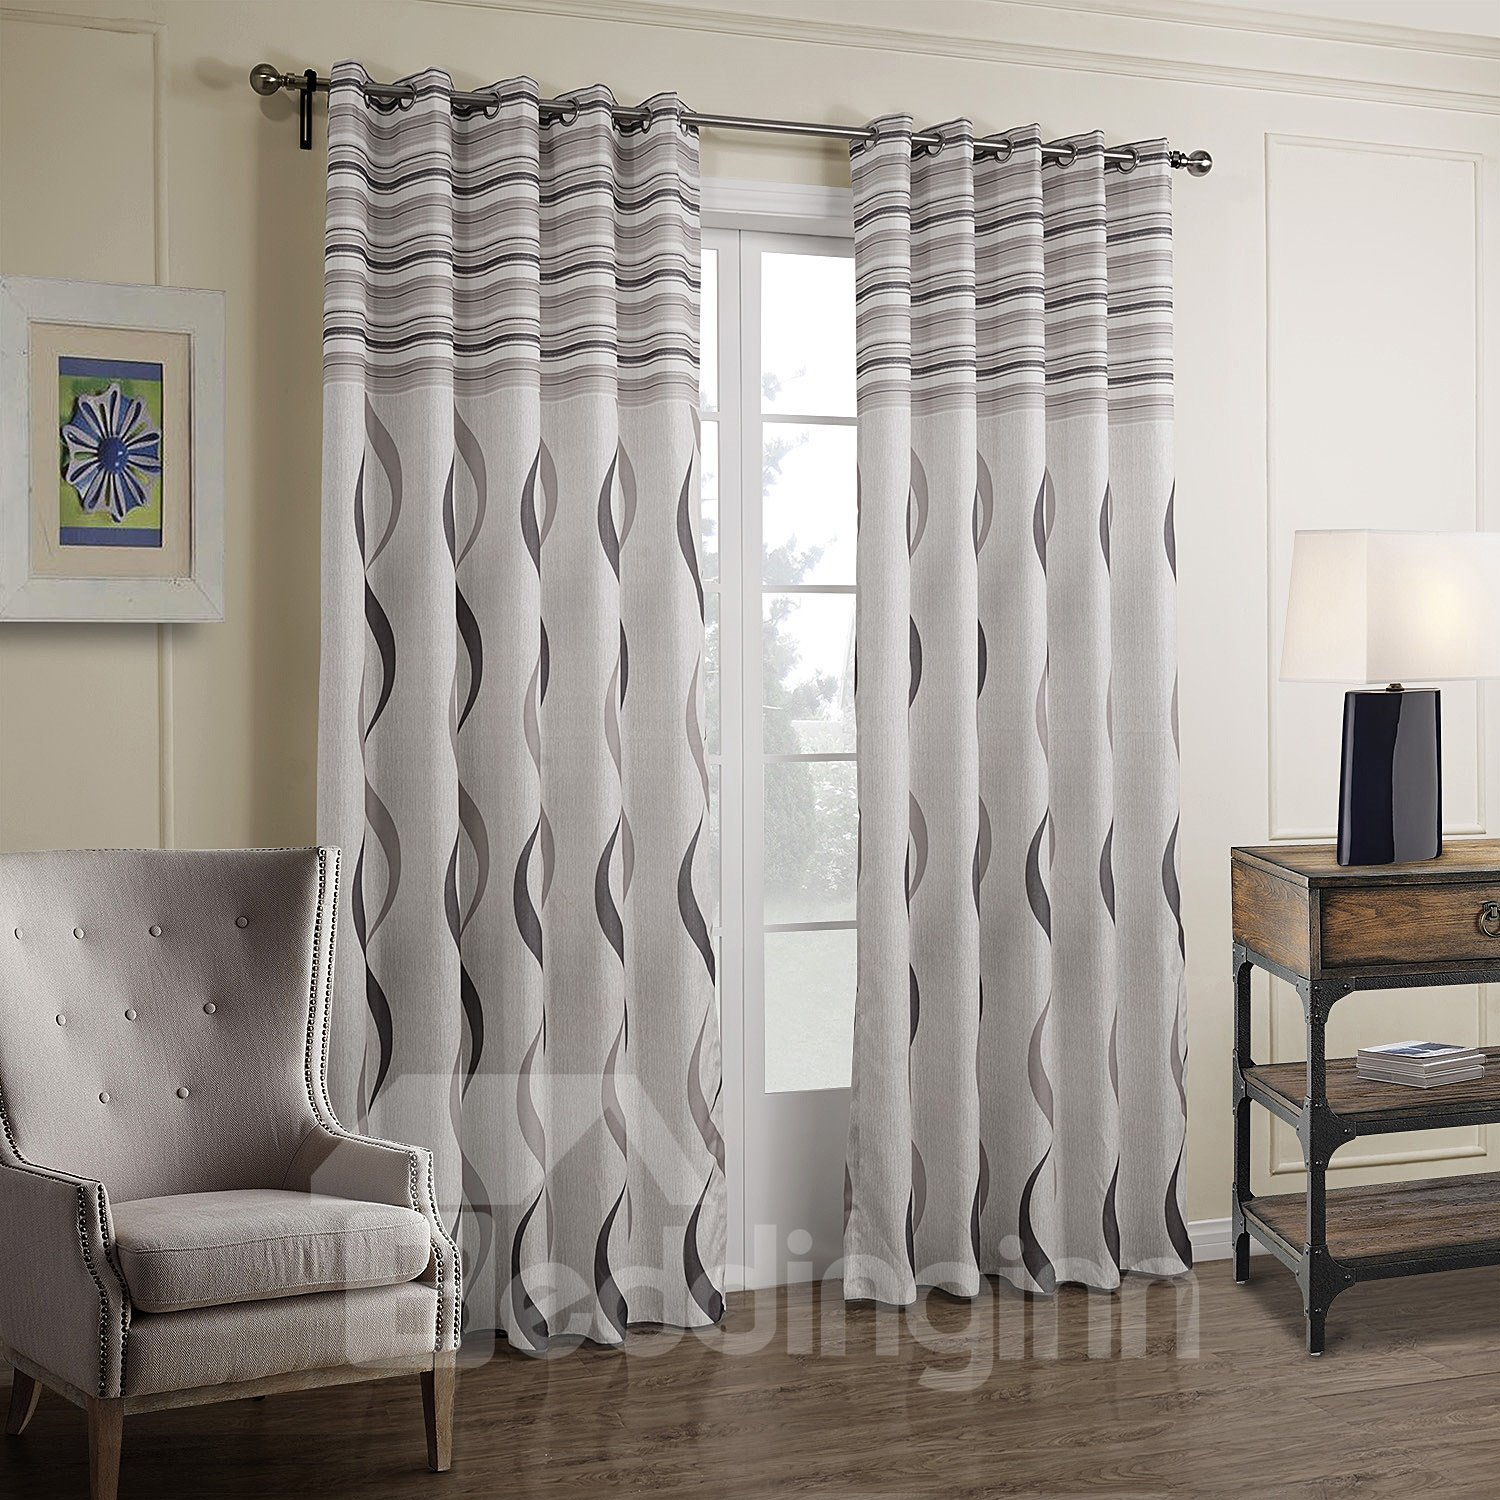 fantastic pretty gray wave pattern custom curtain. Black Bedroom Furniture Sets. Home Design Ideas